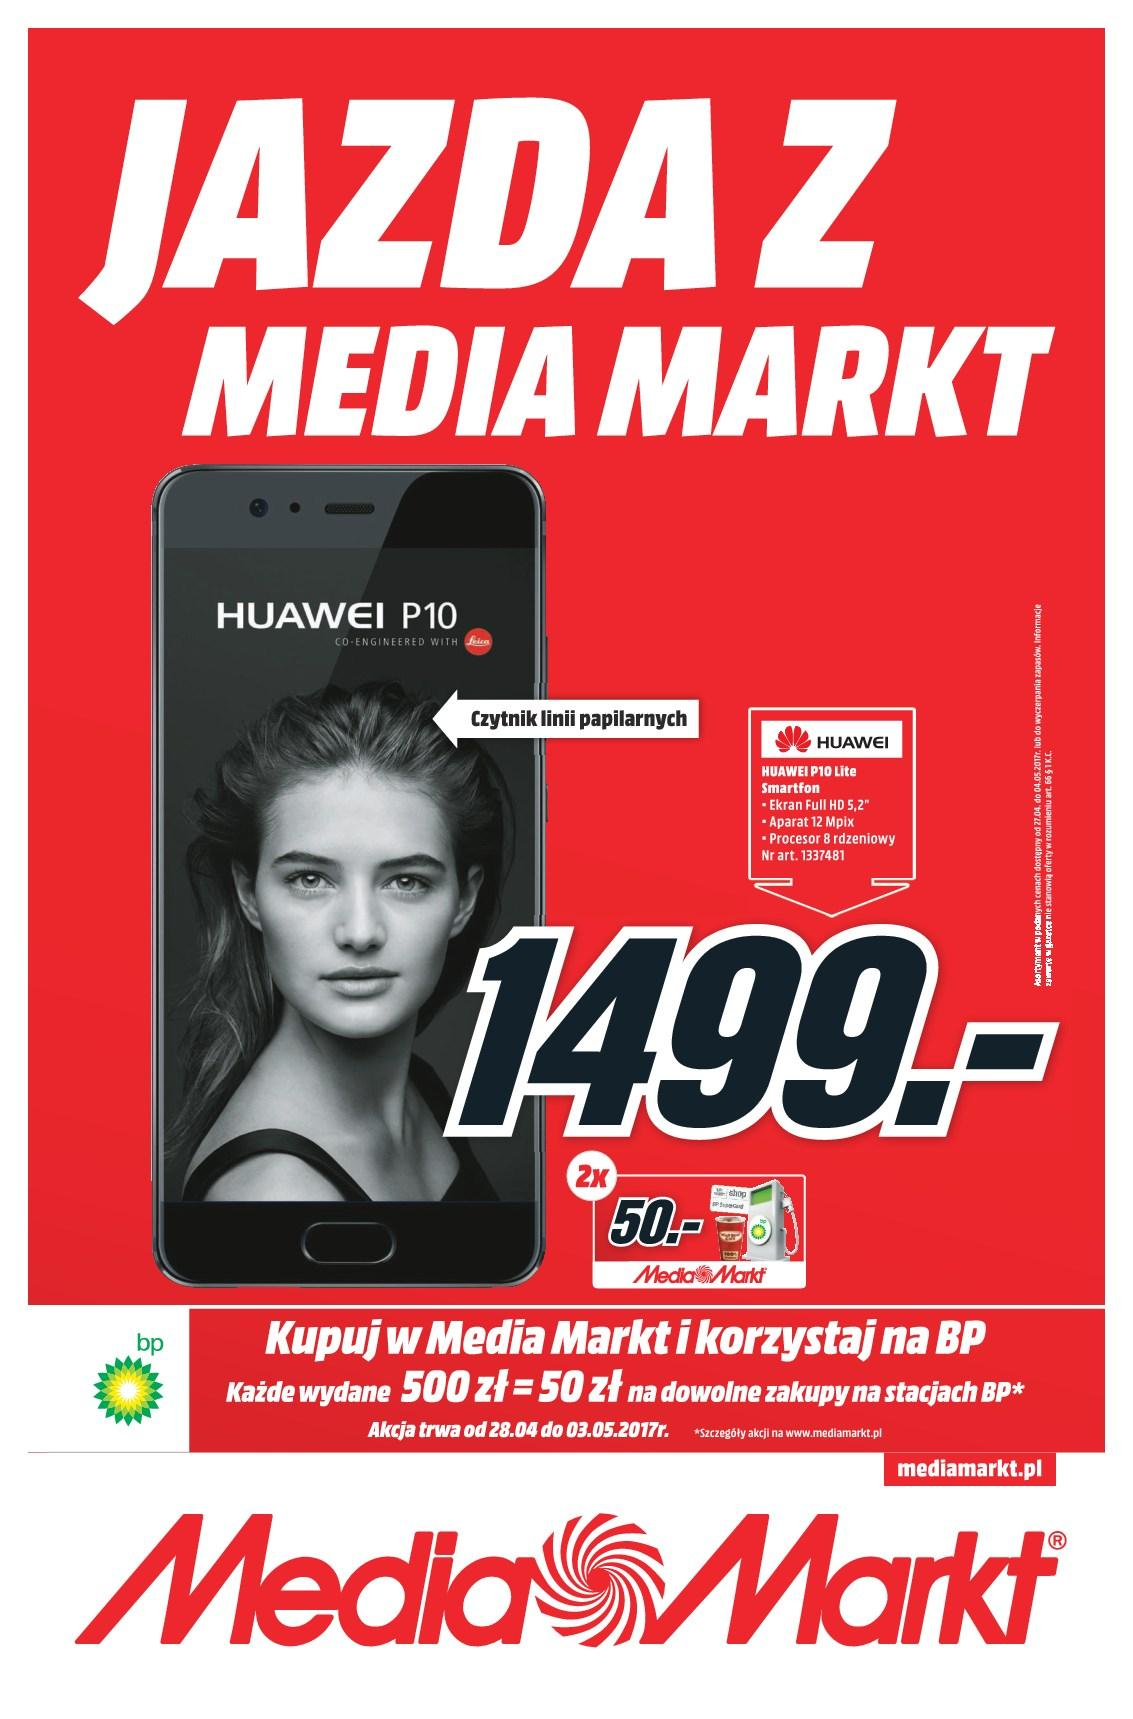 Gazetka promocyjna Media Markt do 03/05/2017 str.0